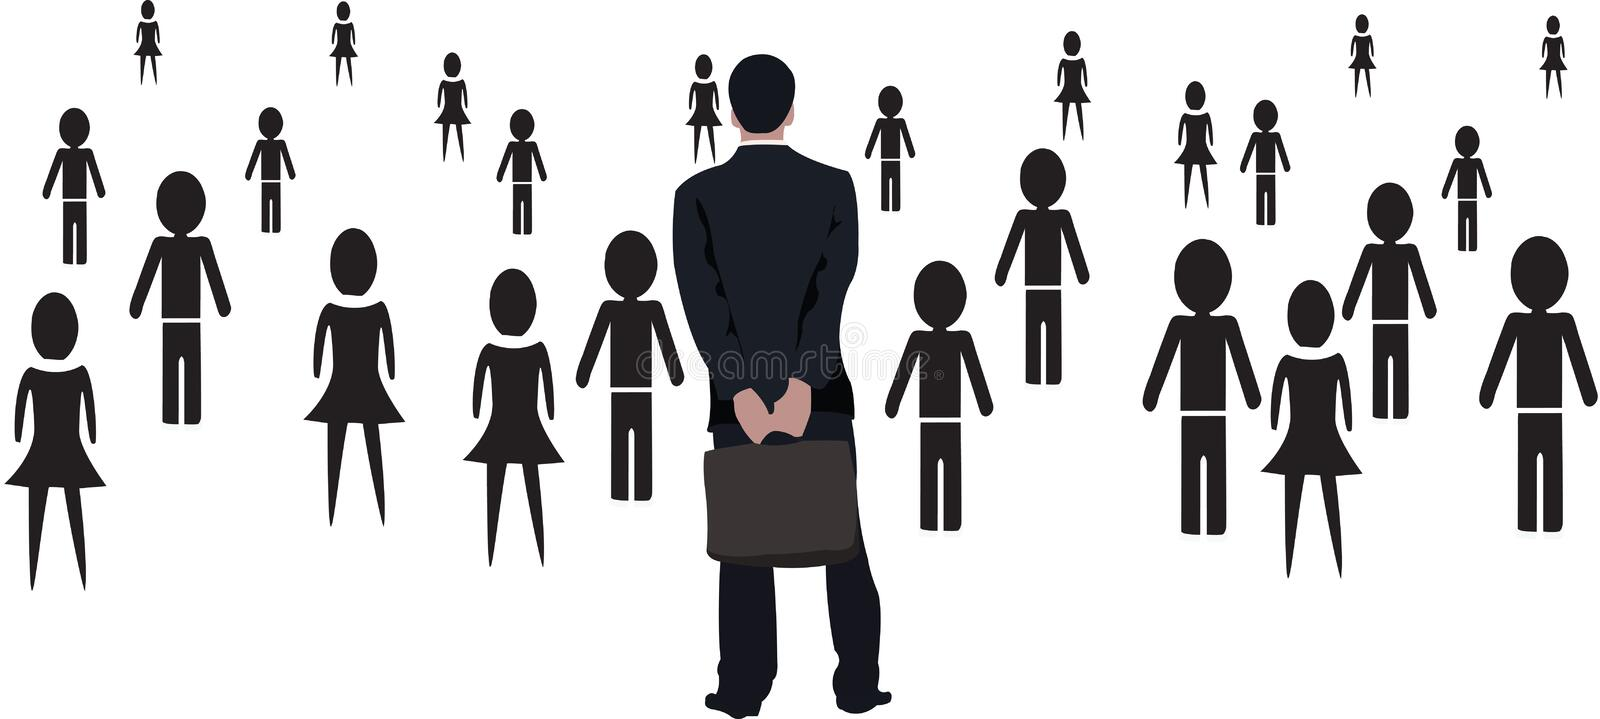 Business meeting assembly group of people royalty free illustration